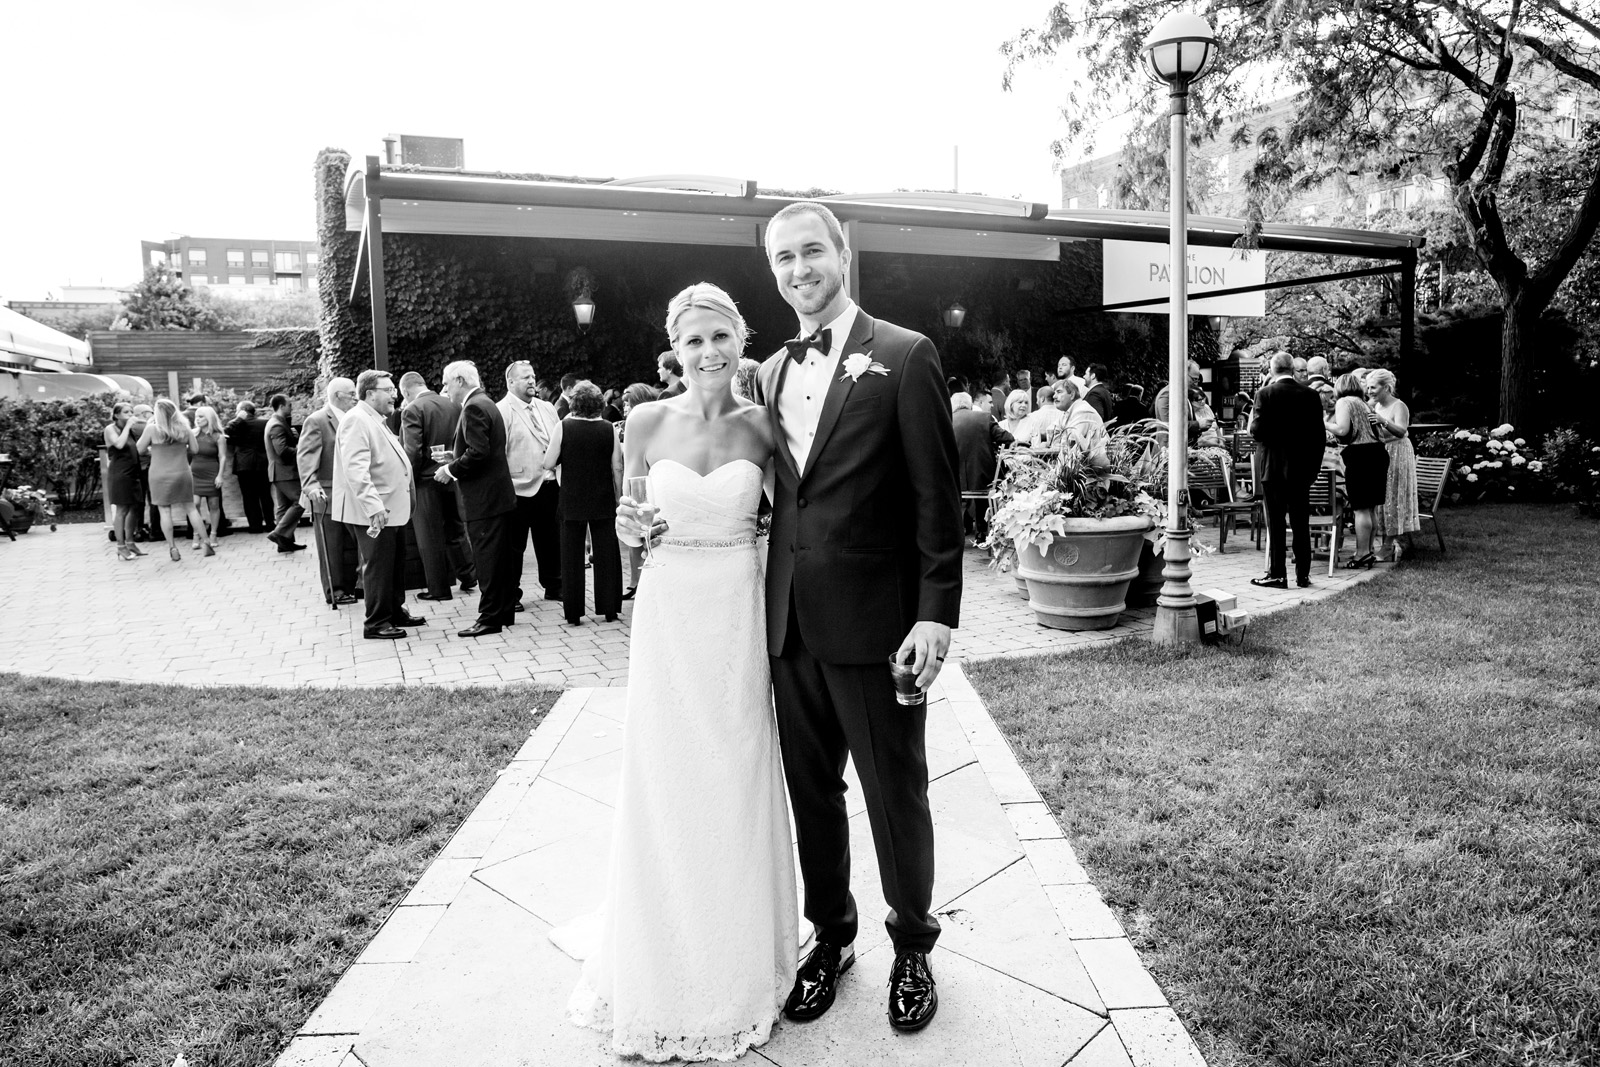 Bride and Groom black and white photo outdoors at Galleria Marchetti Pavilion